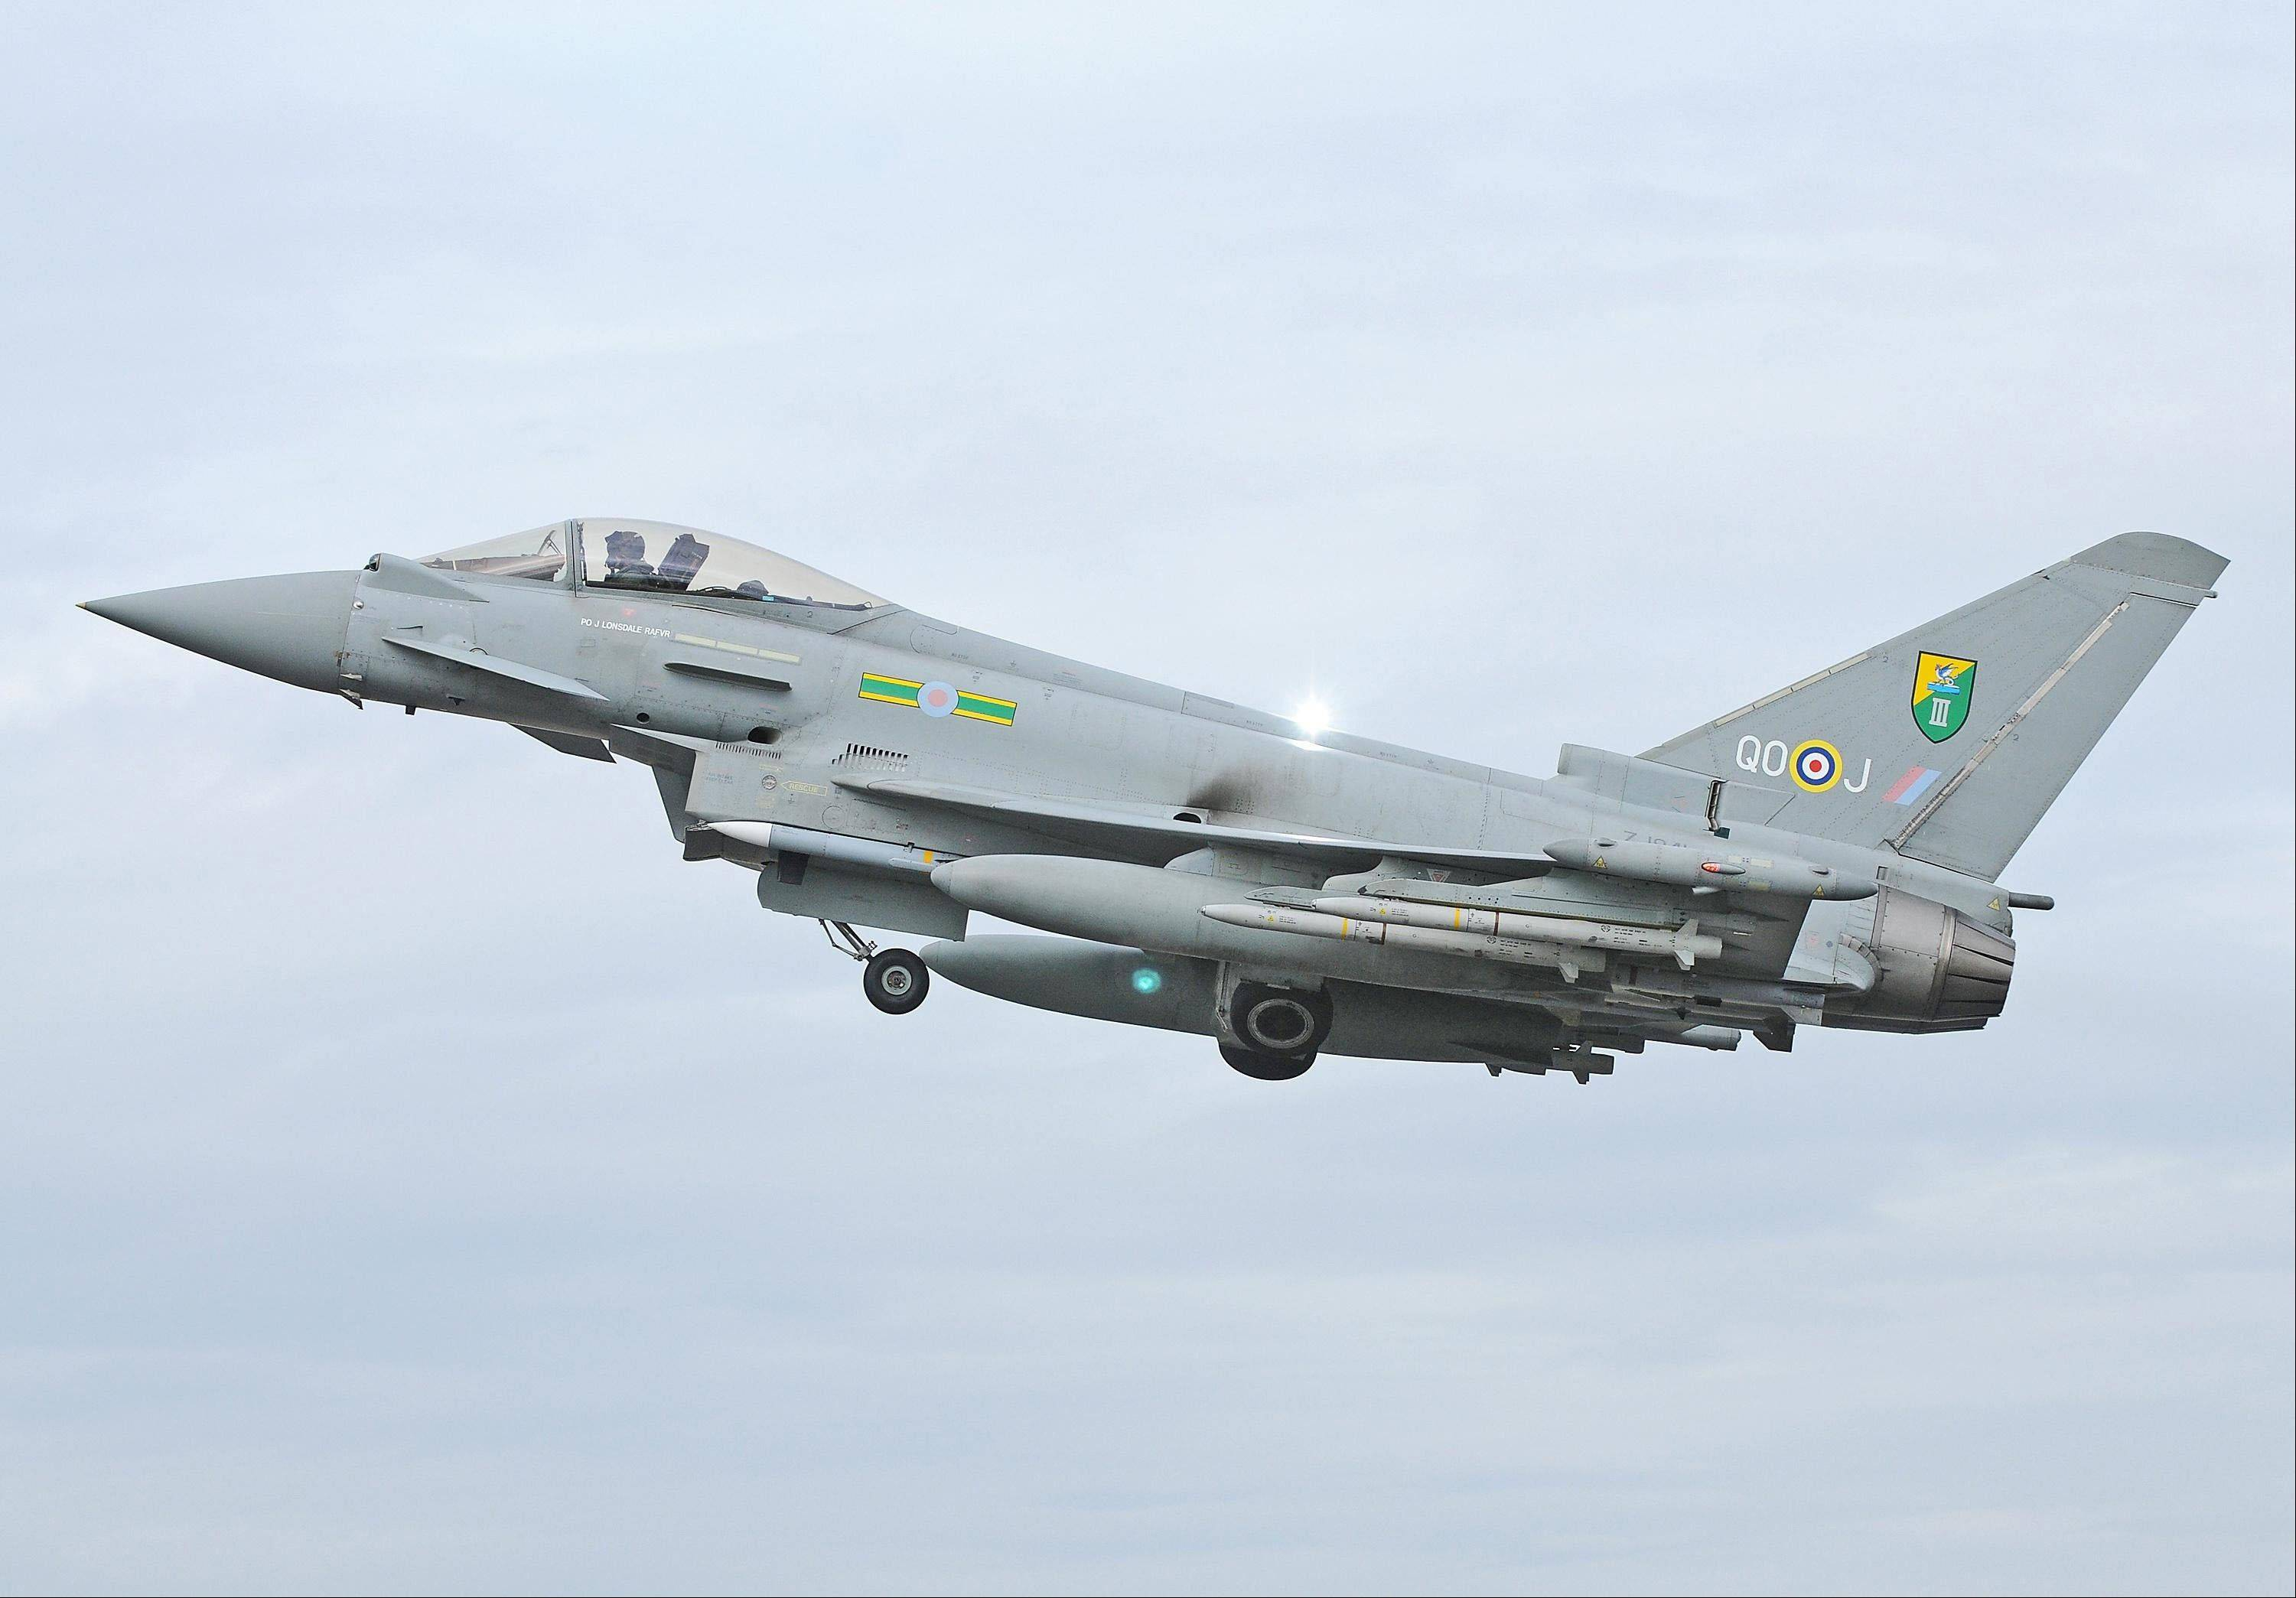 Undated photo issued by the British Ministry of Defence of an RAF Typhoon Aircraft of the type that has escorted a passenger plane into Stansted Airport in southern England following an incident on board Friday May 24, 2013. British media reported the flight was a Pakistan International Airlines passenger plane flying to Manchester, England.